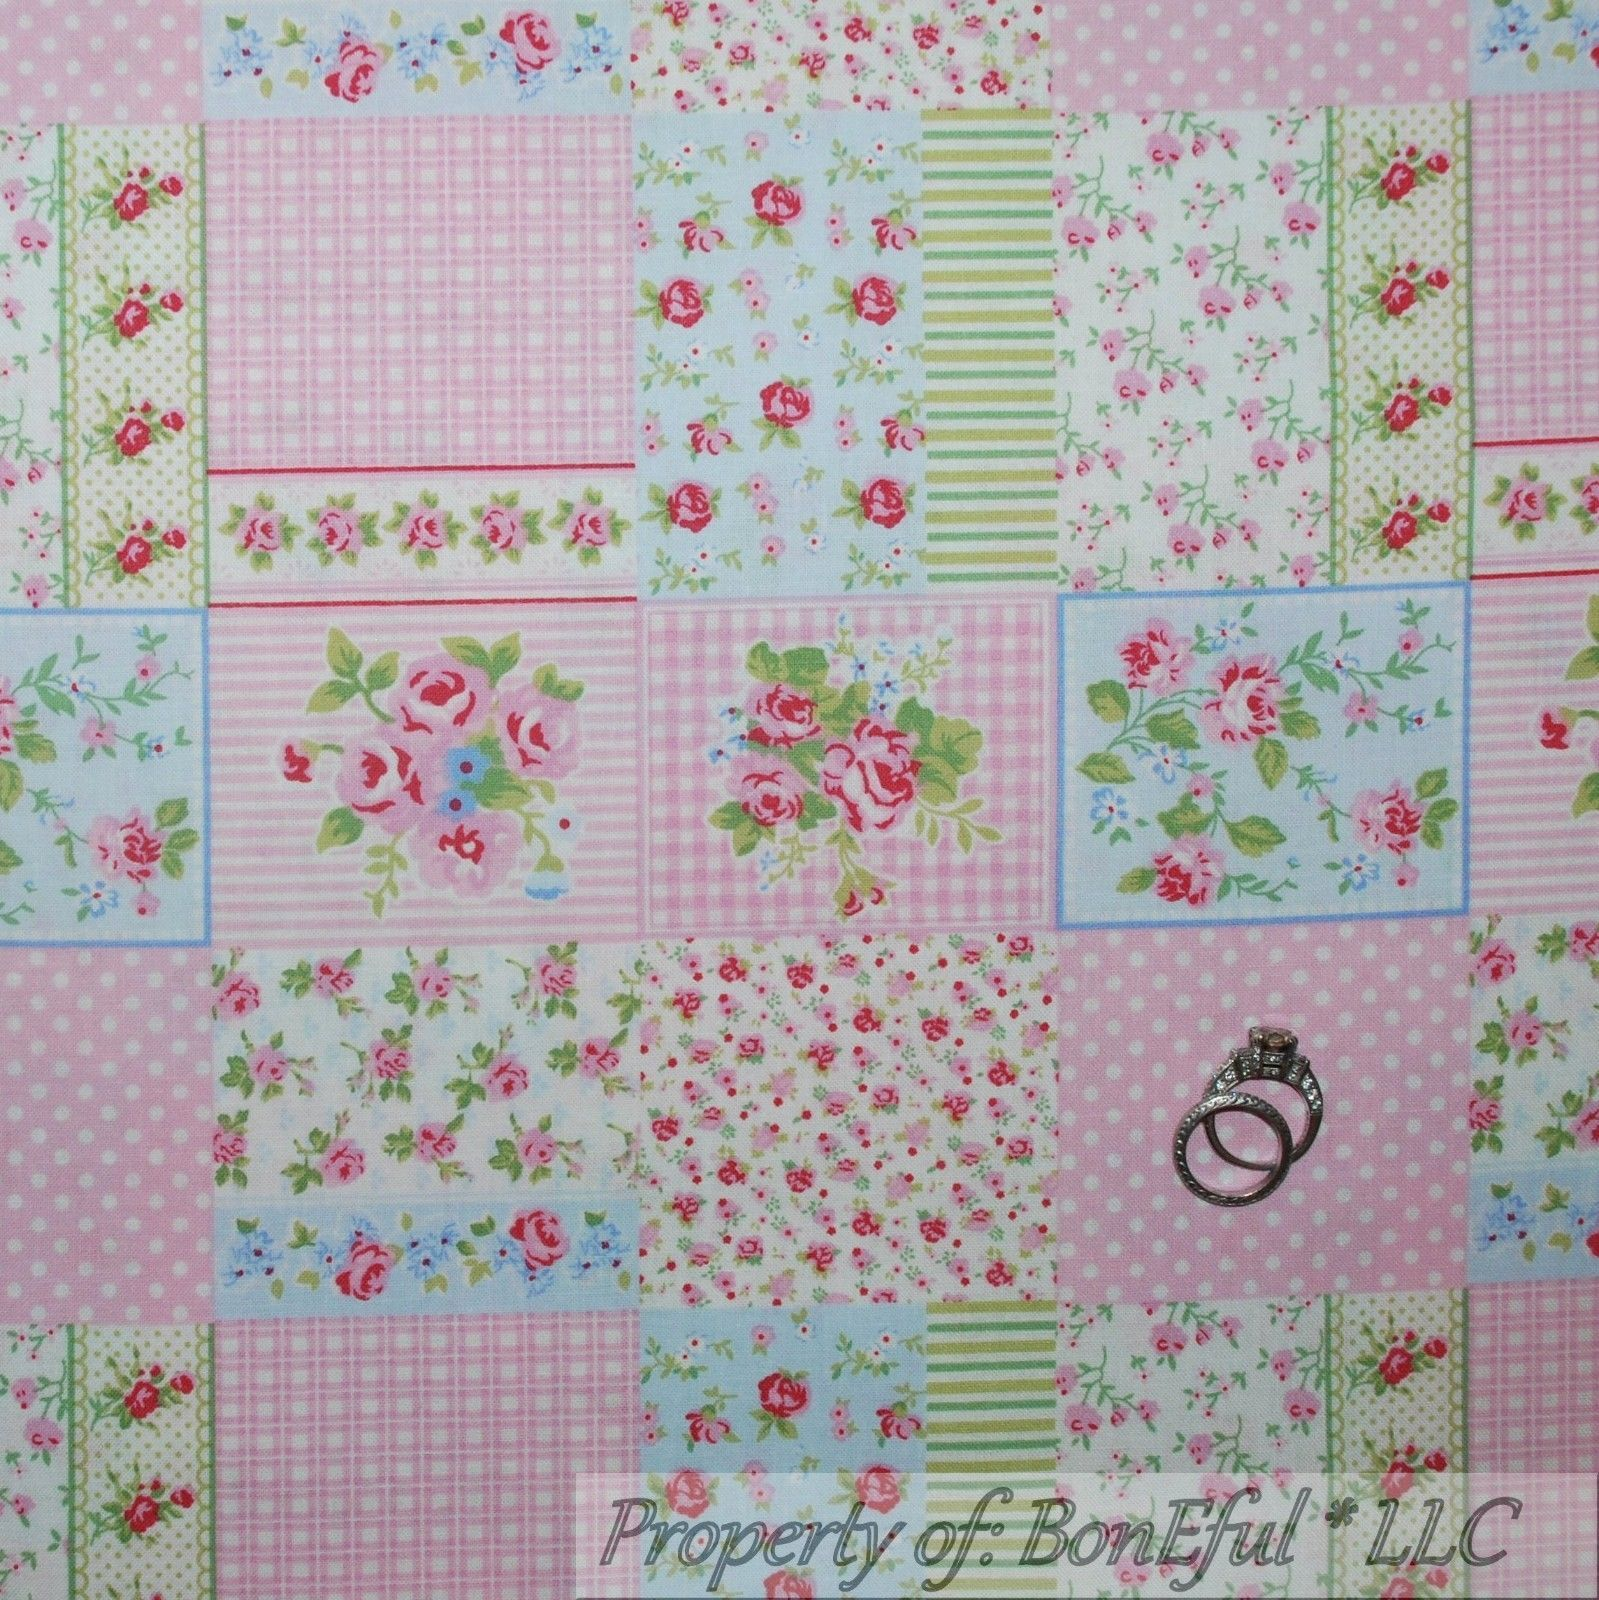 Boneful Fabric Fq Cotton Quilt Vtg S Pink White Dot Rose